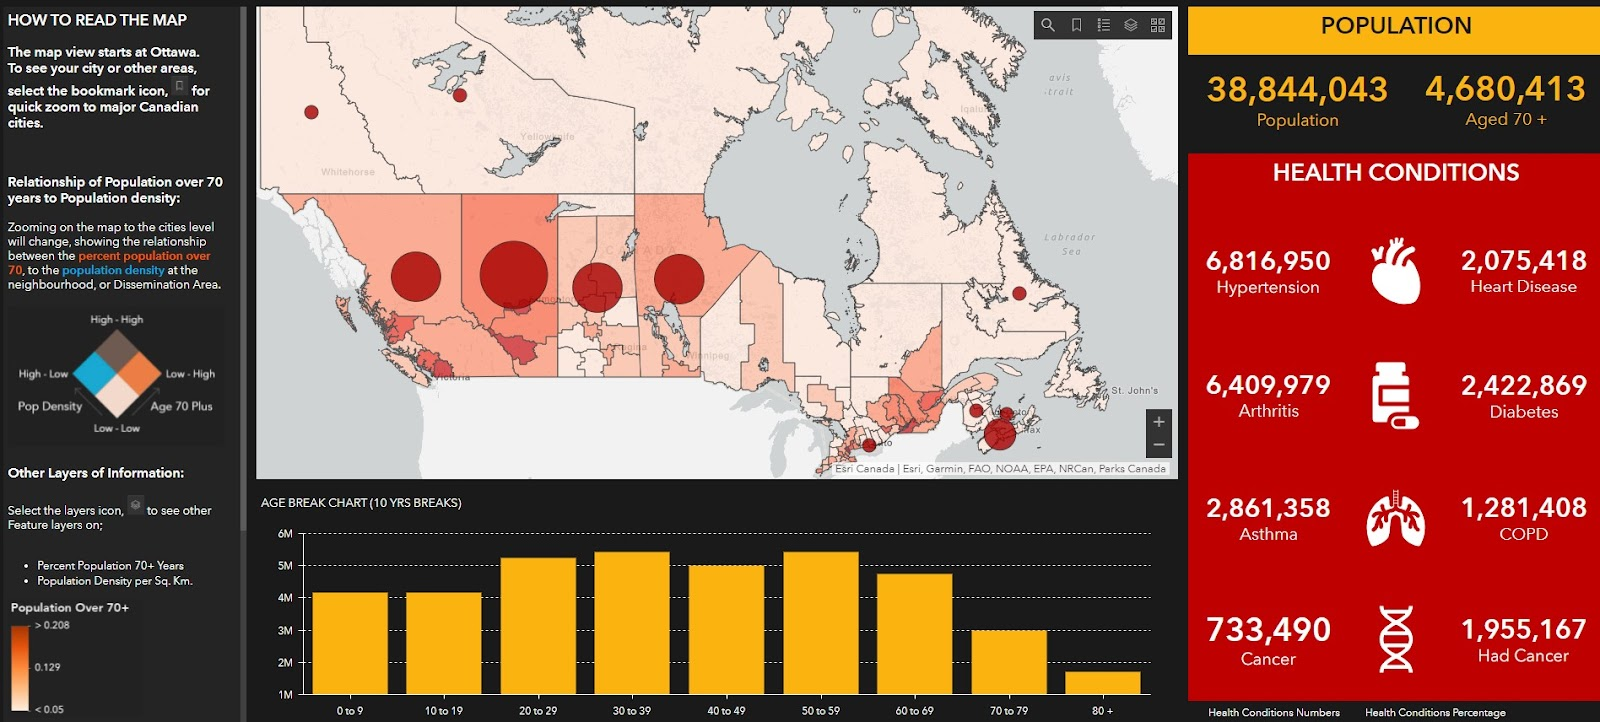 at risk populations in Canada, age 70 plus, maps during covid